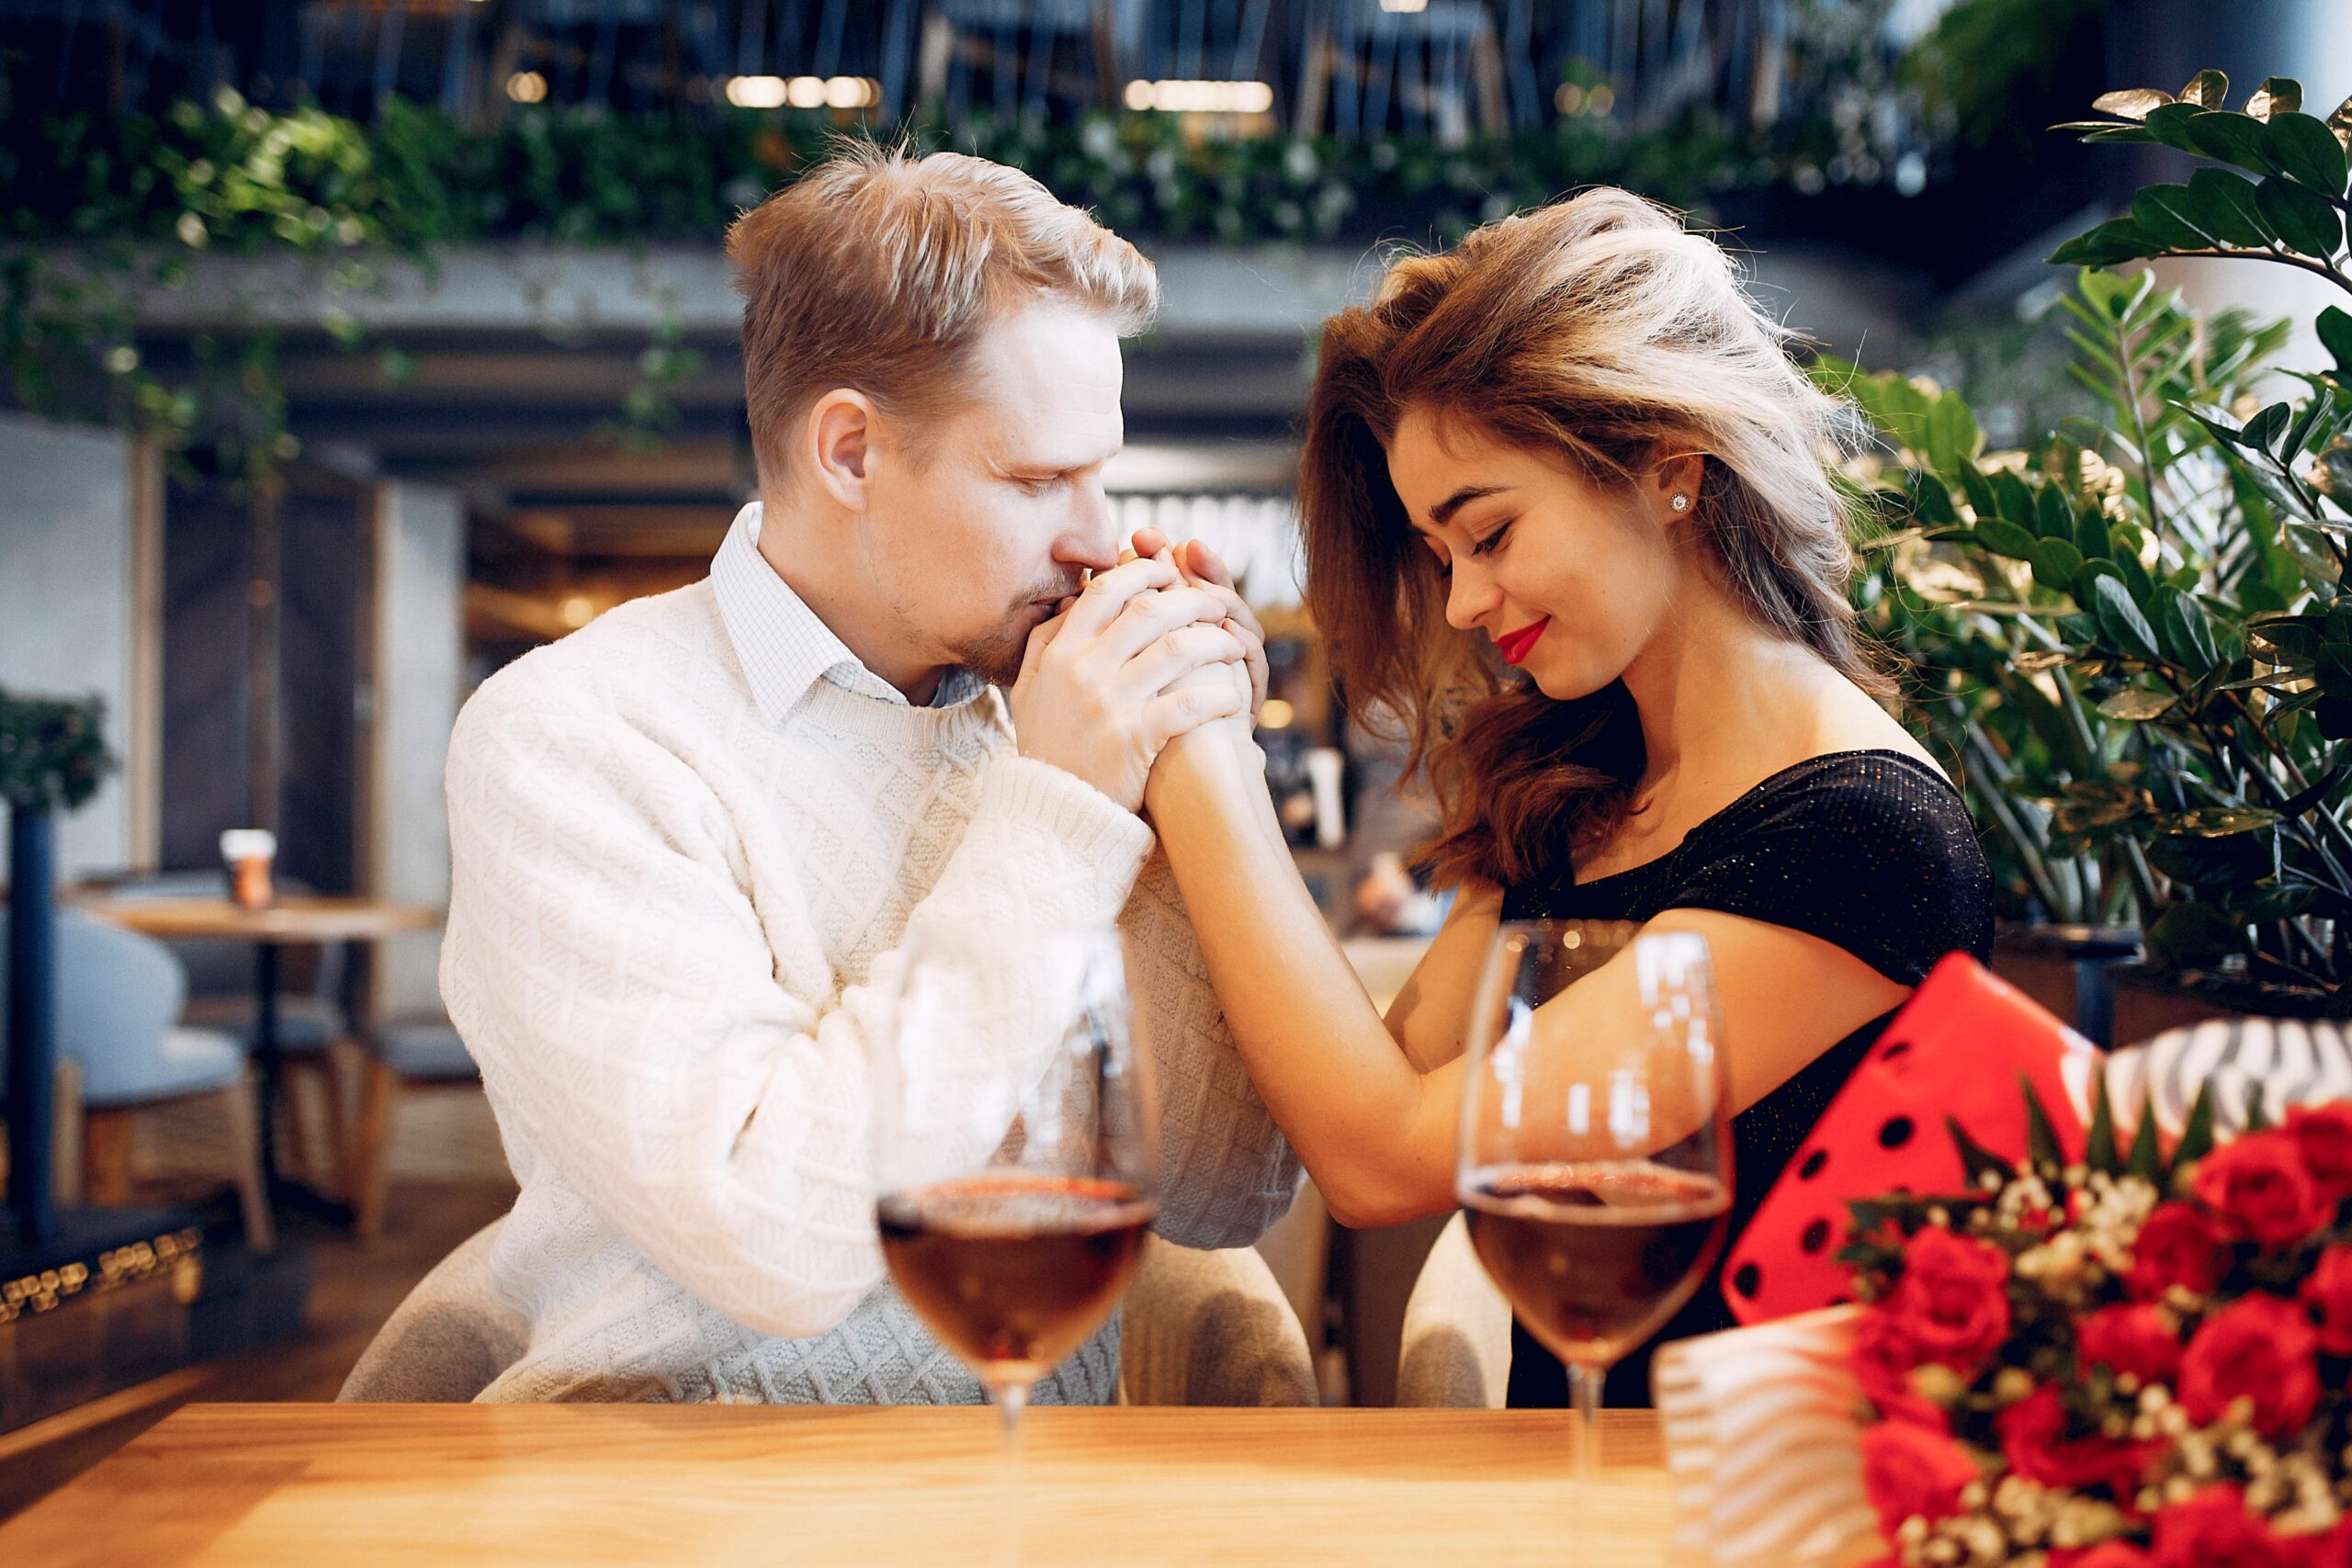 13 Signs You're When You on Dating